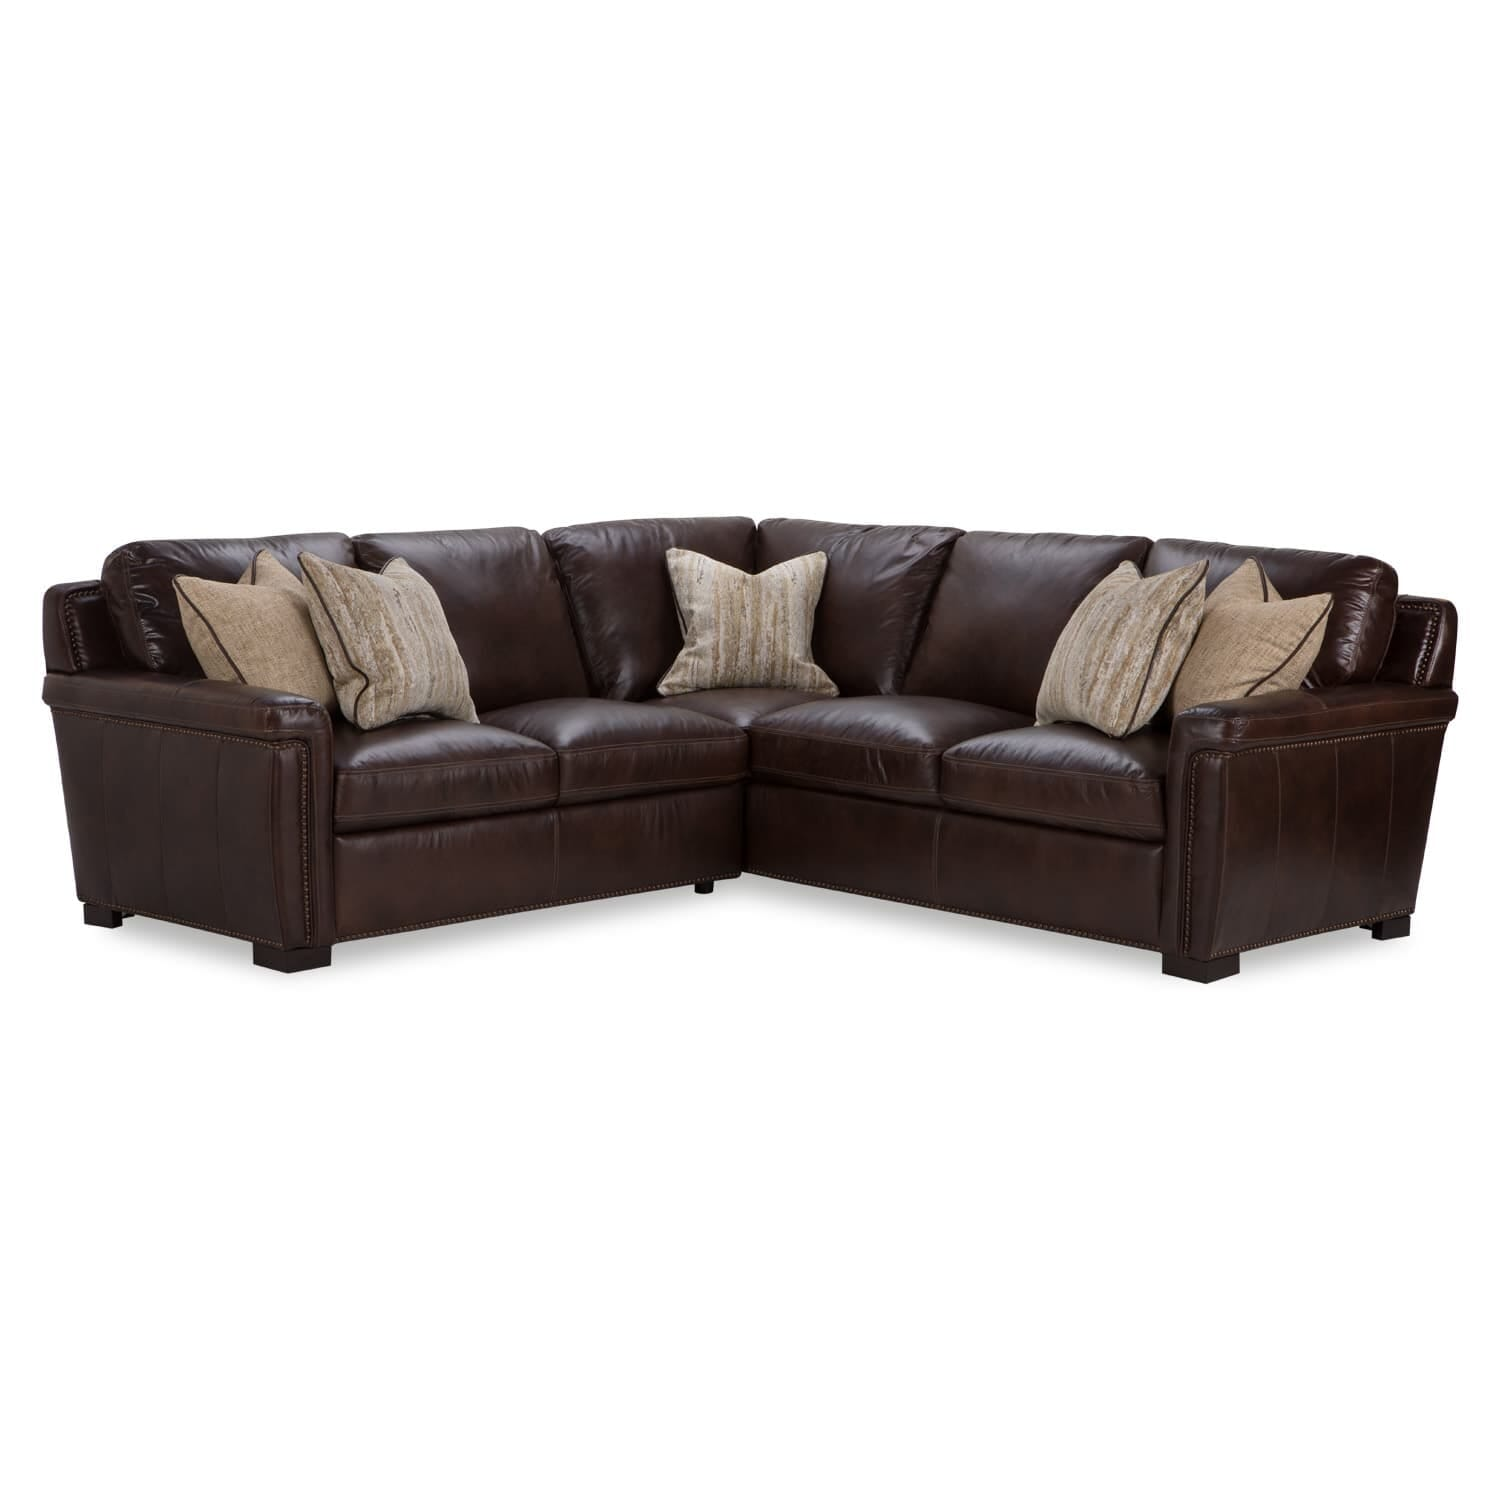 Sales Furniture: Furniture Sales From WG&R In Wisconsin